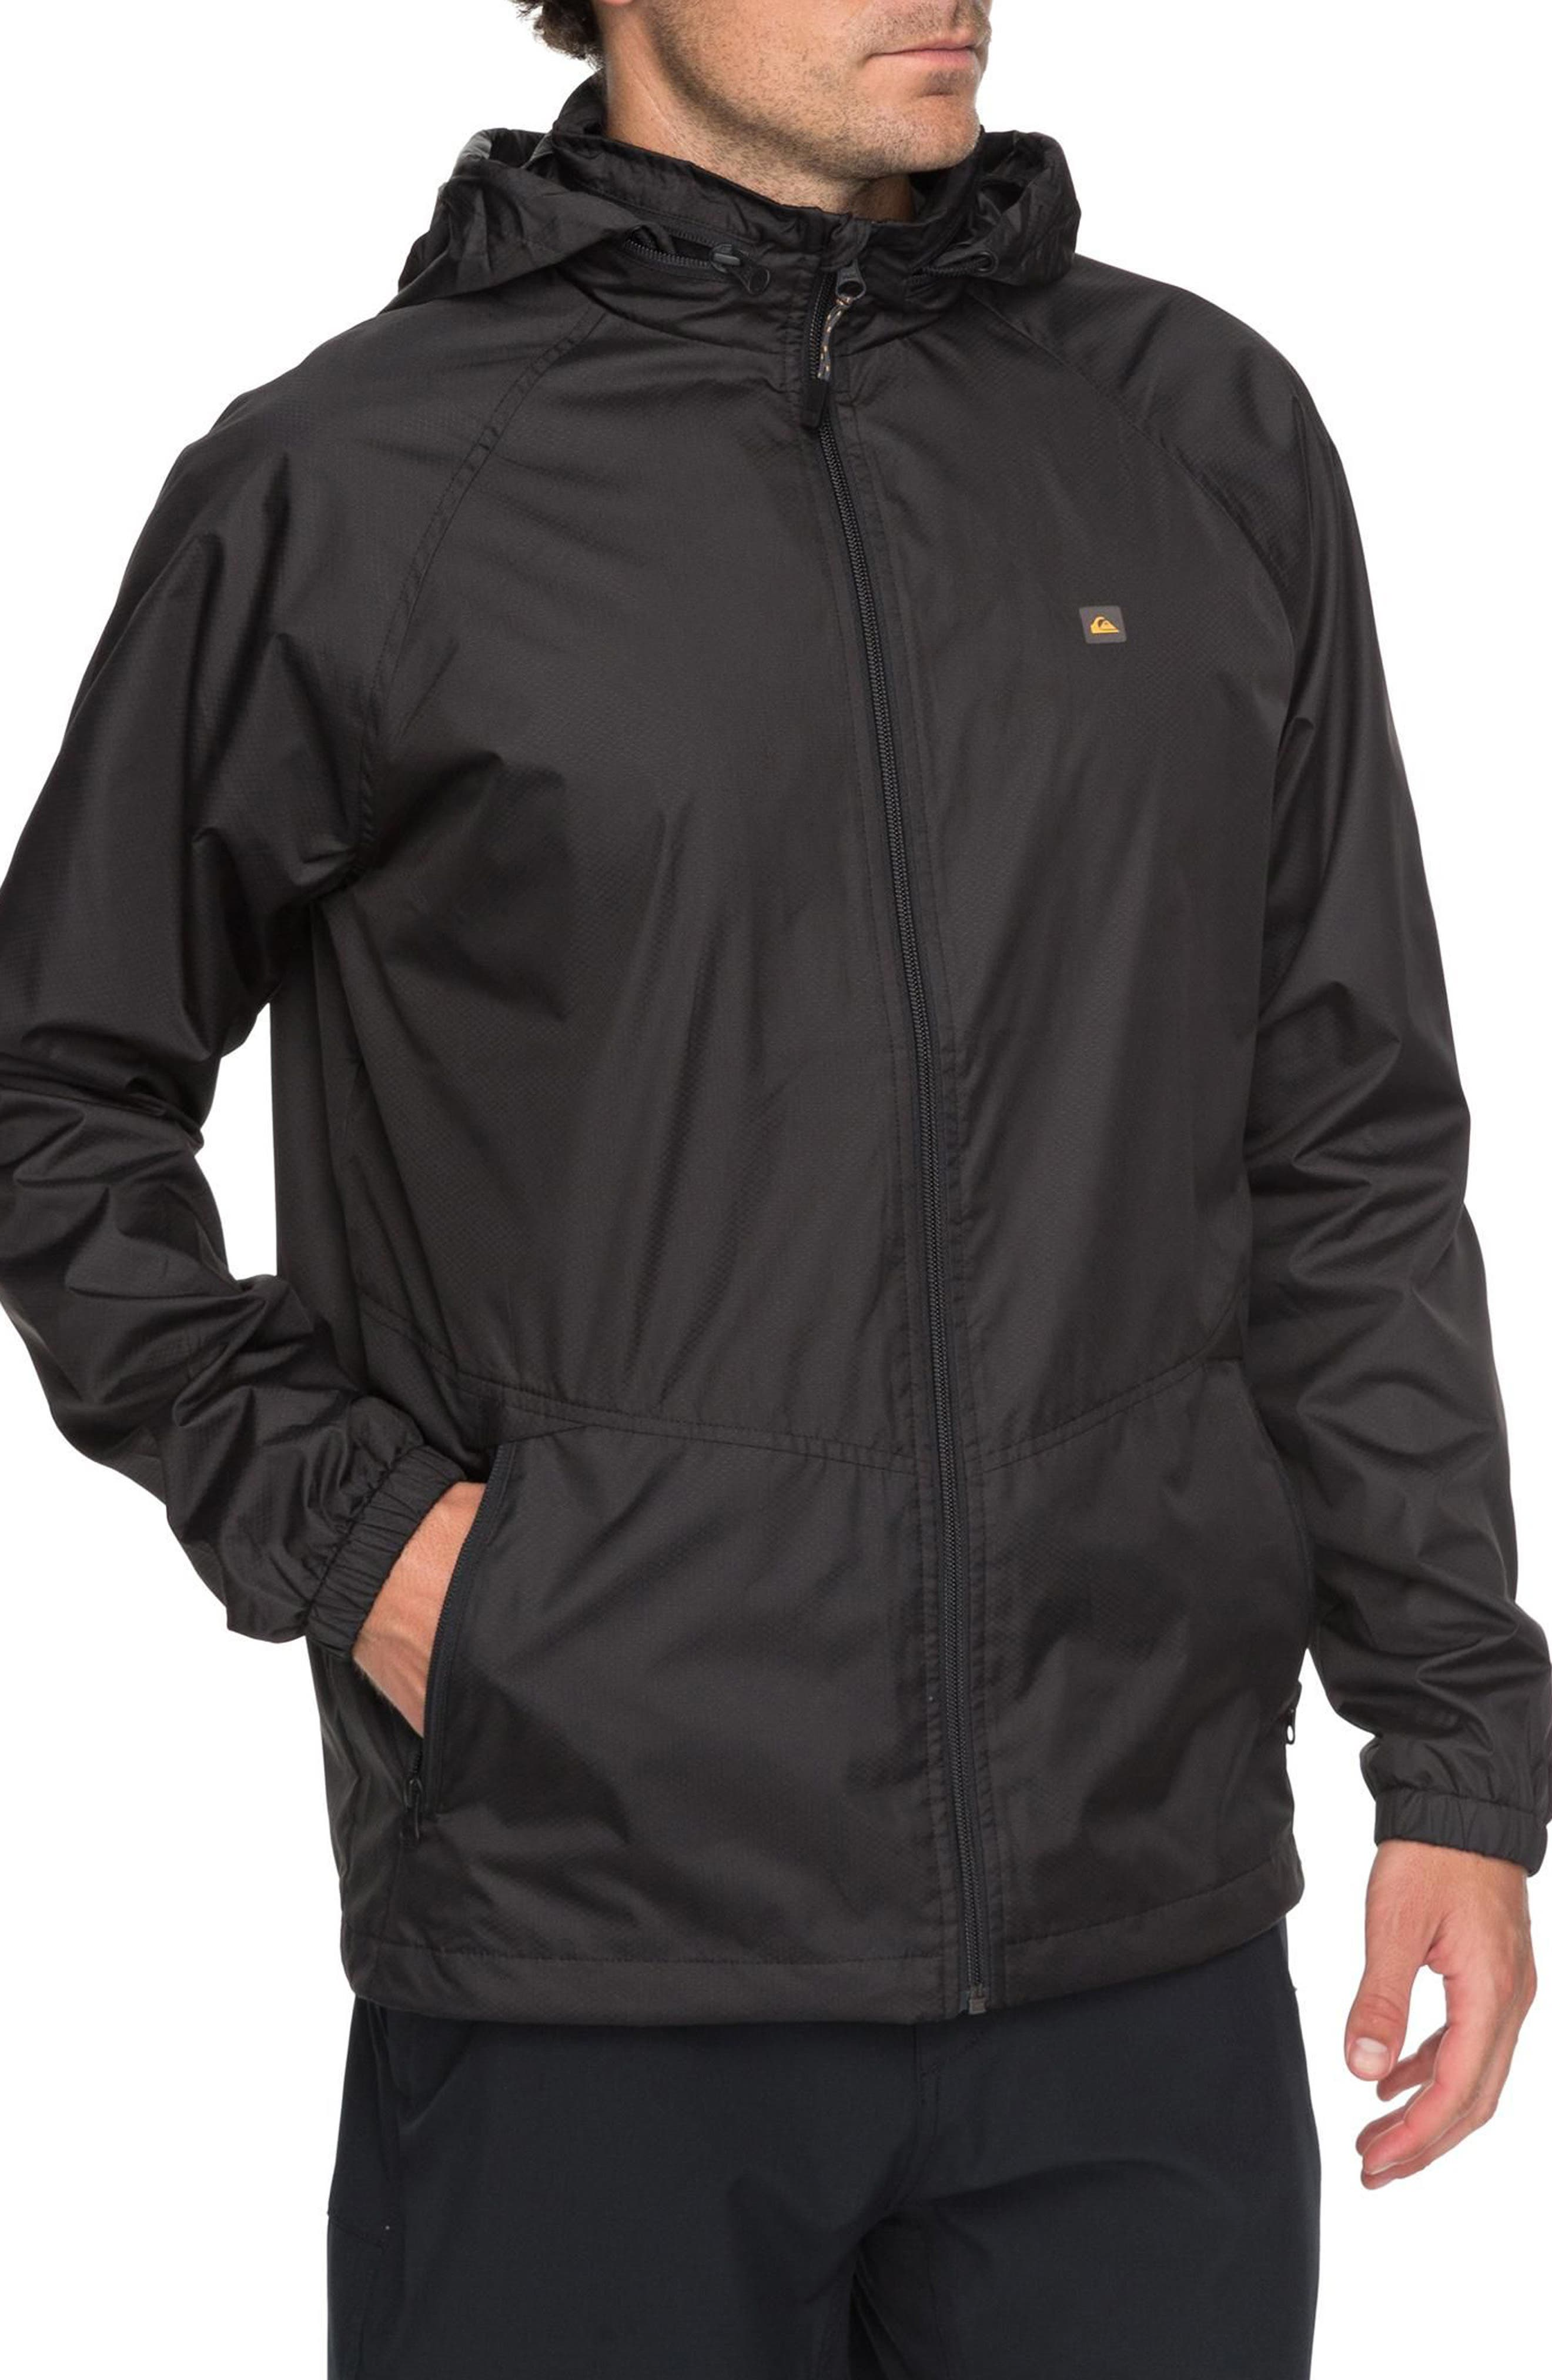 Shell Shock Water Repellent Windbreaker,                             Alternate thumbnail 3, color,                             002